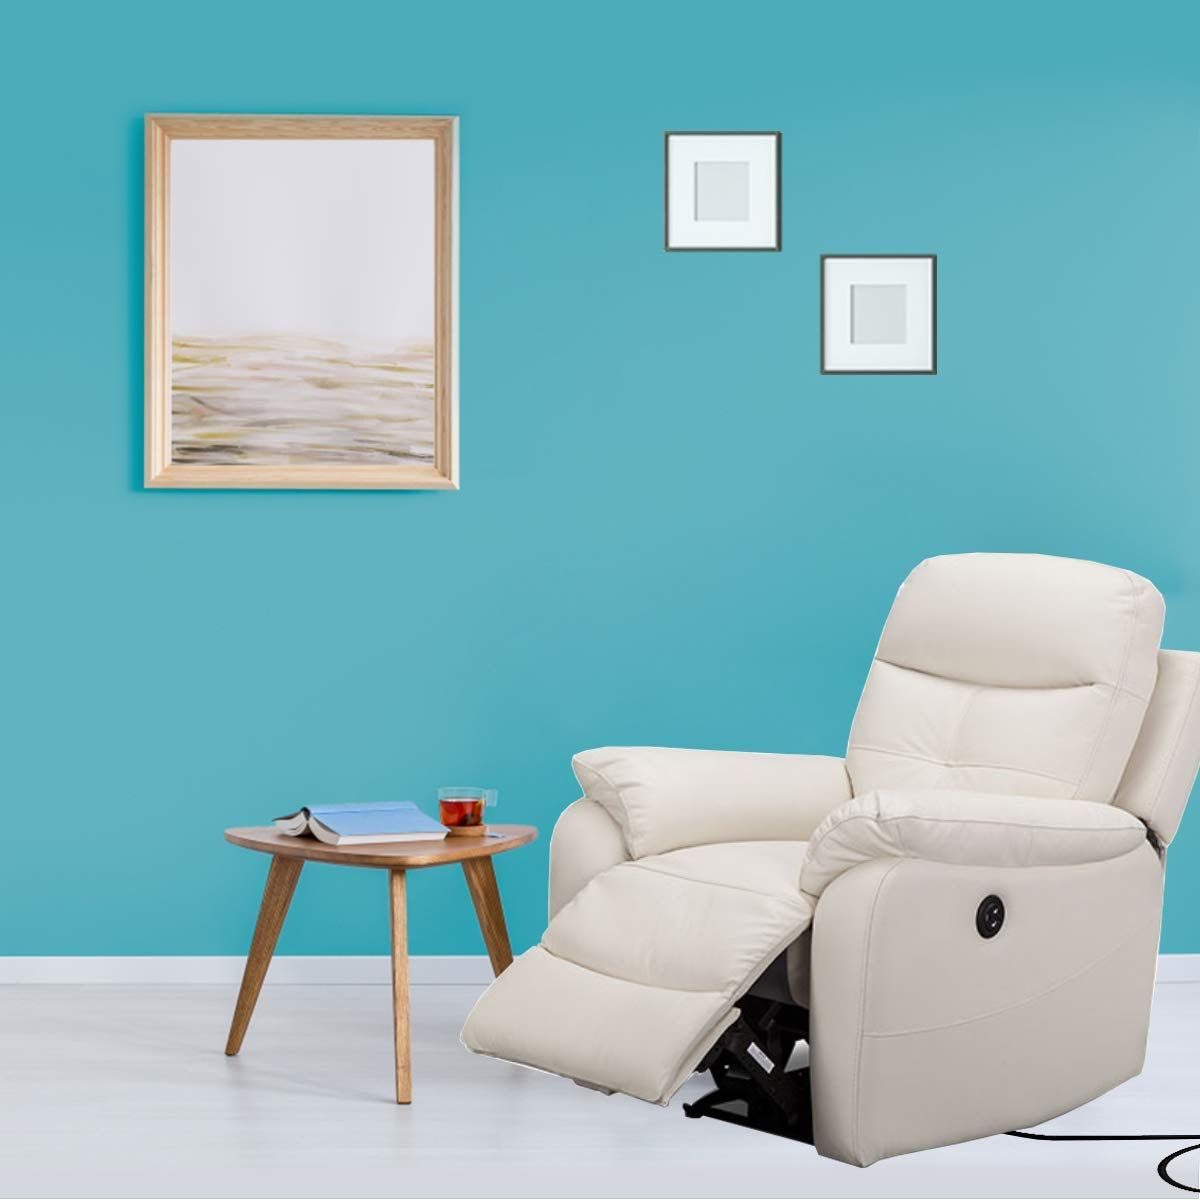 Cool Pin By Aieve On Useful Home Gadget Ashley Sofa Sofa Chair Inzonedesignstudio Interior Chair Design Inzonedesignstudiocom